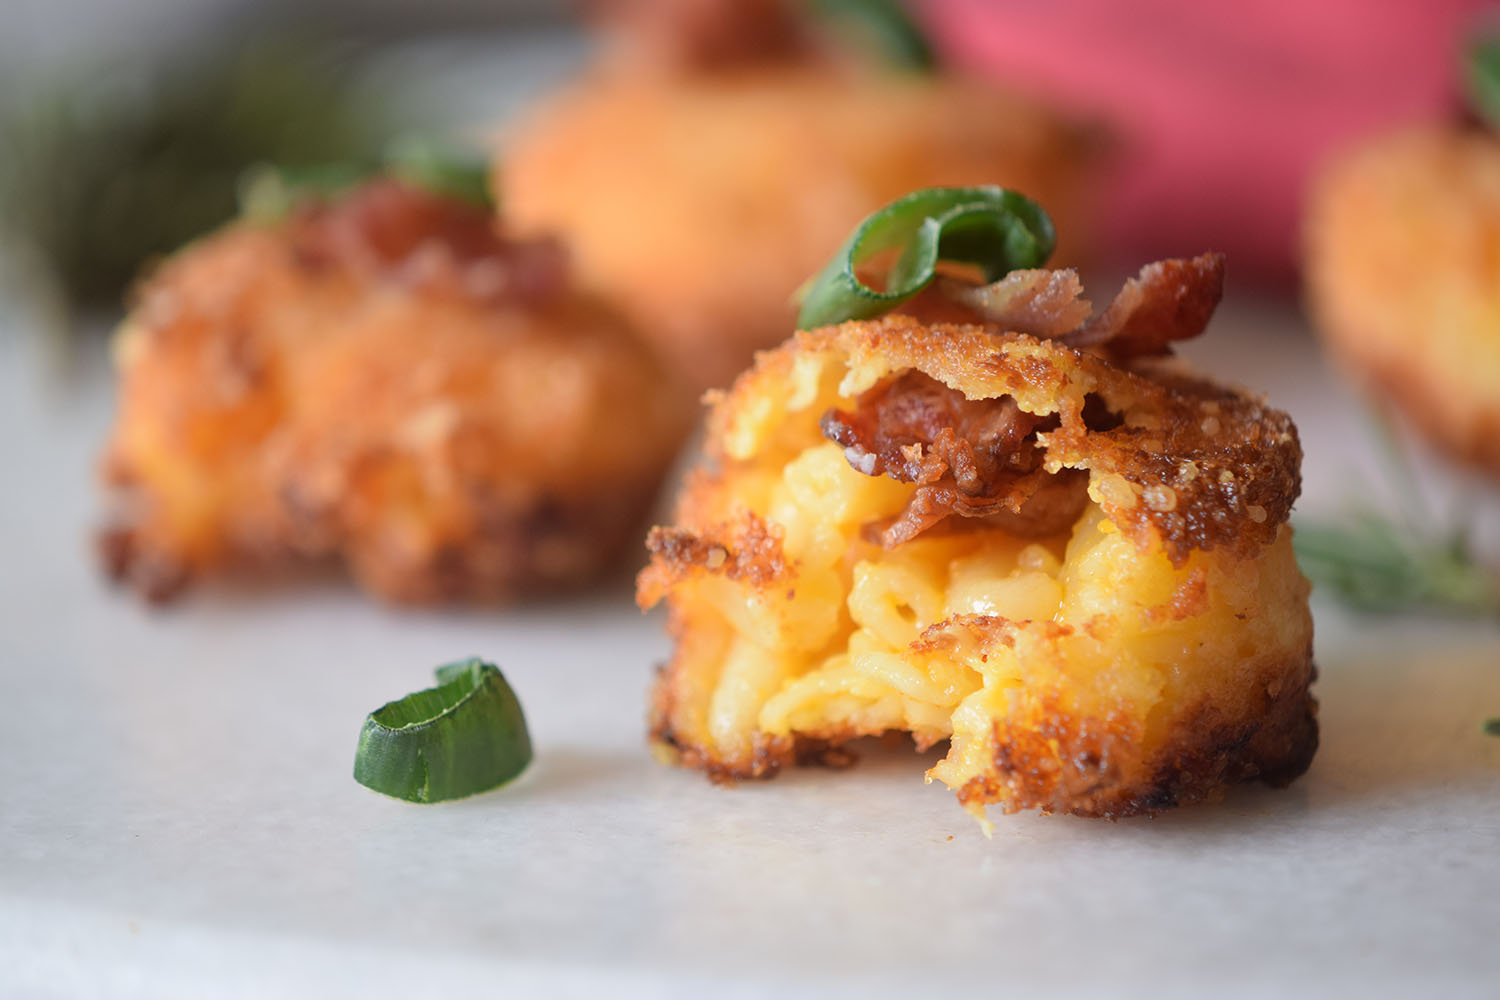 Mac and cheese fried up crispy with bacon